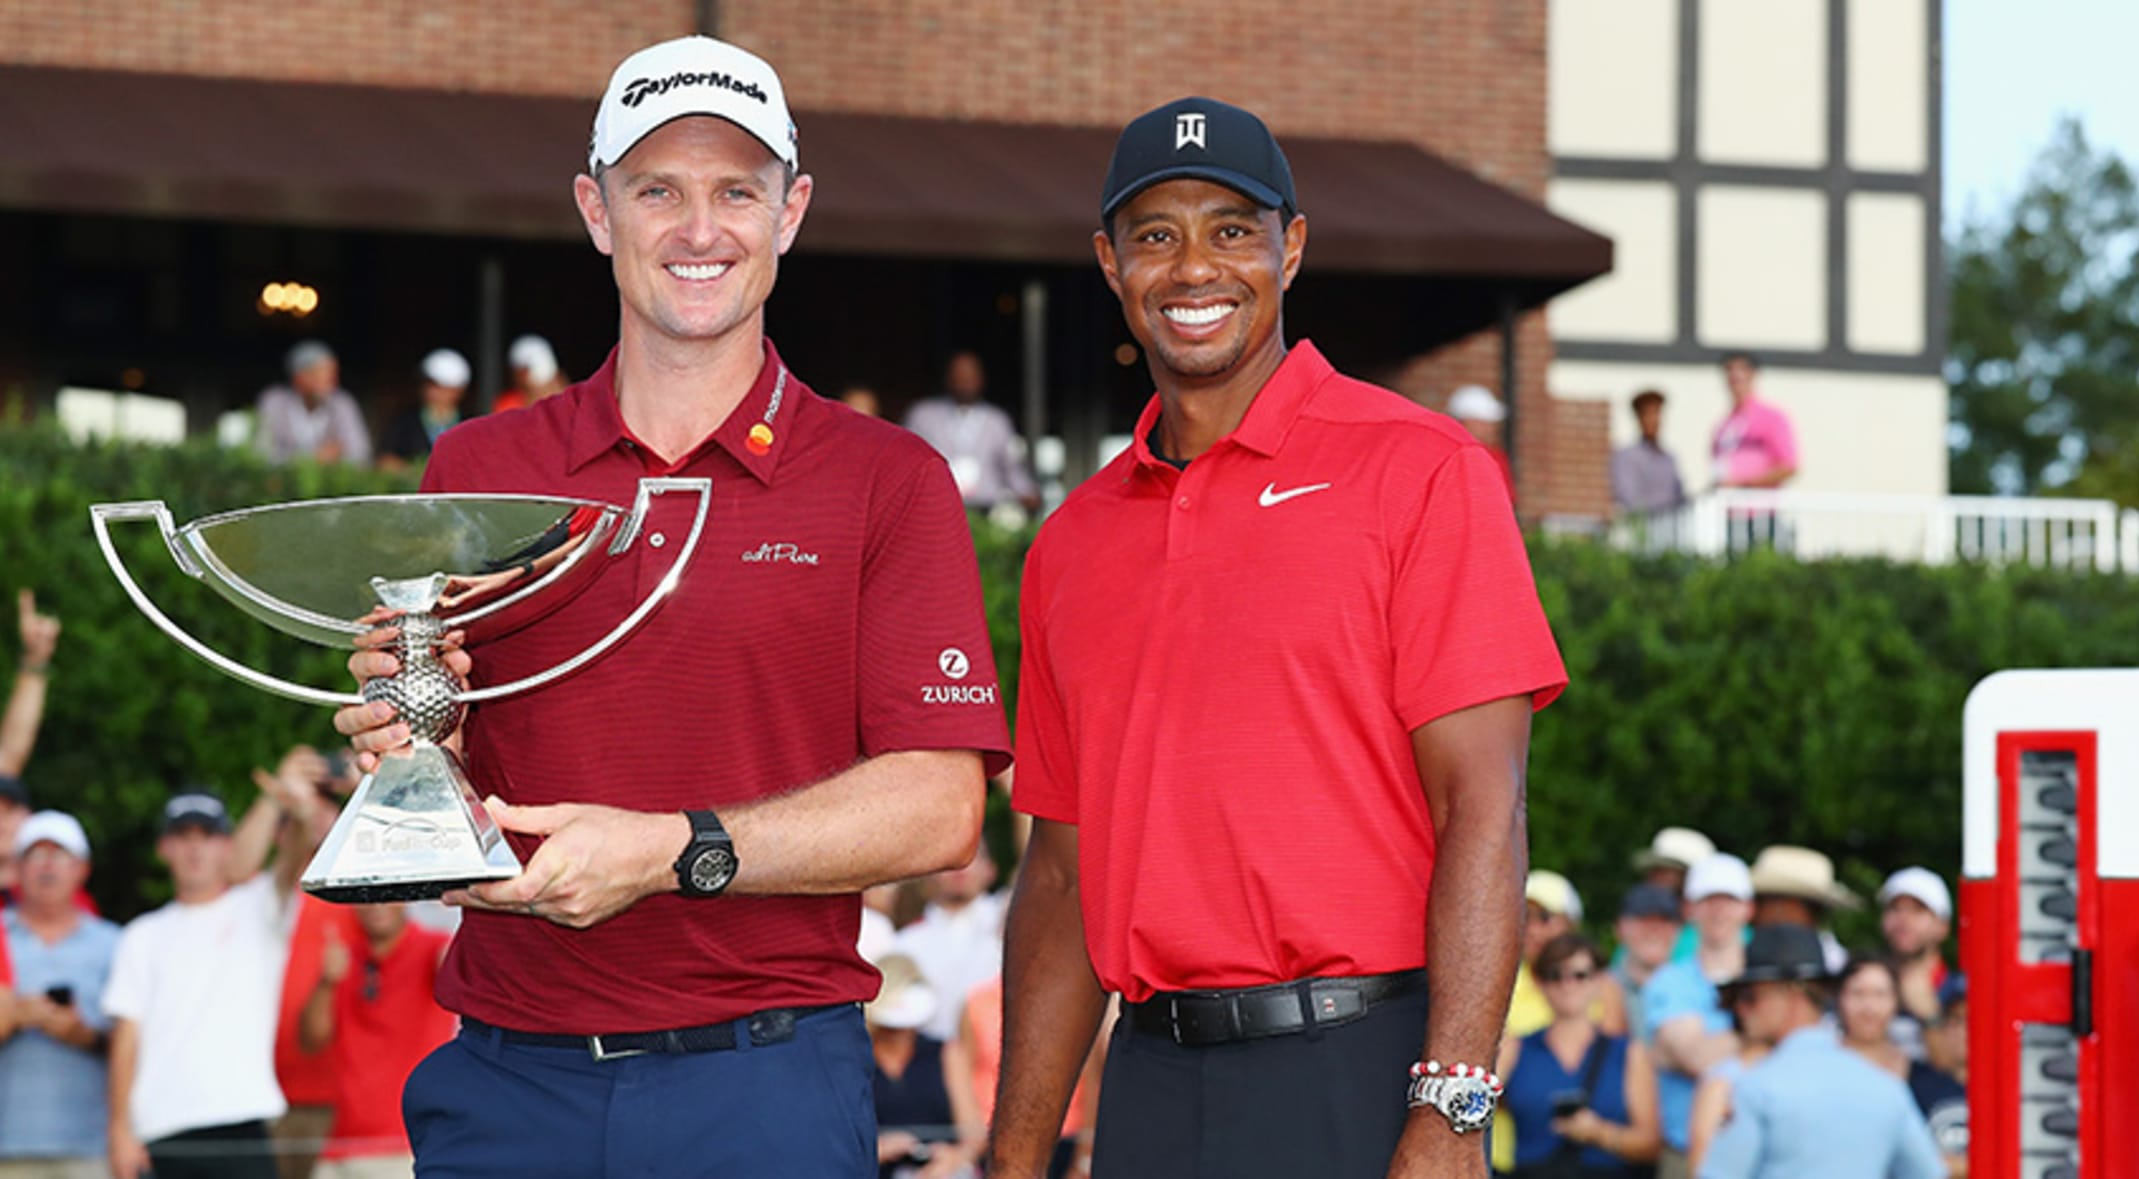 Tiger Woods wins TOUR Championship for 80th victory on PGA TOUR 29d96a04e46d